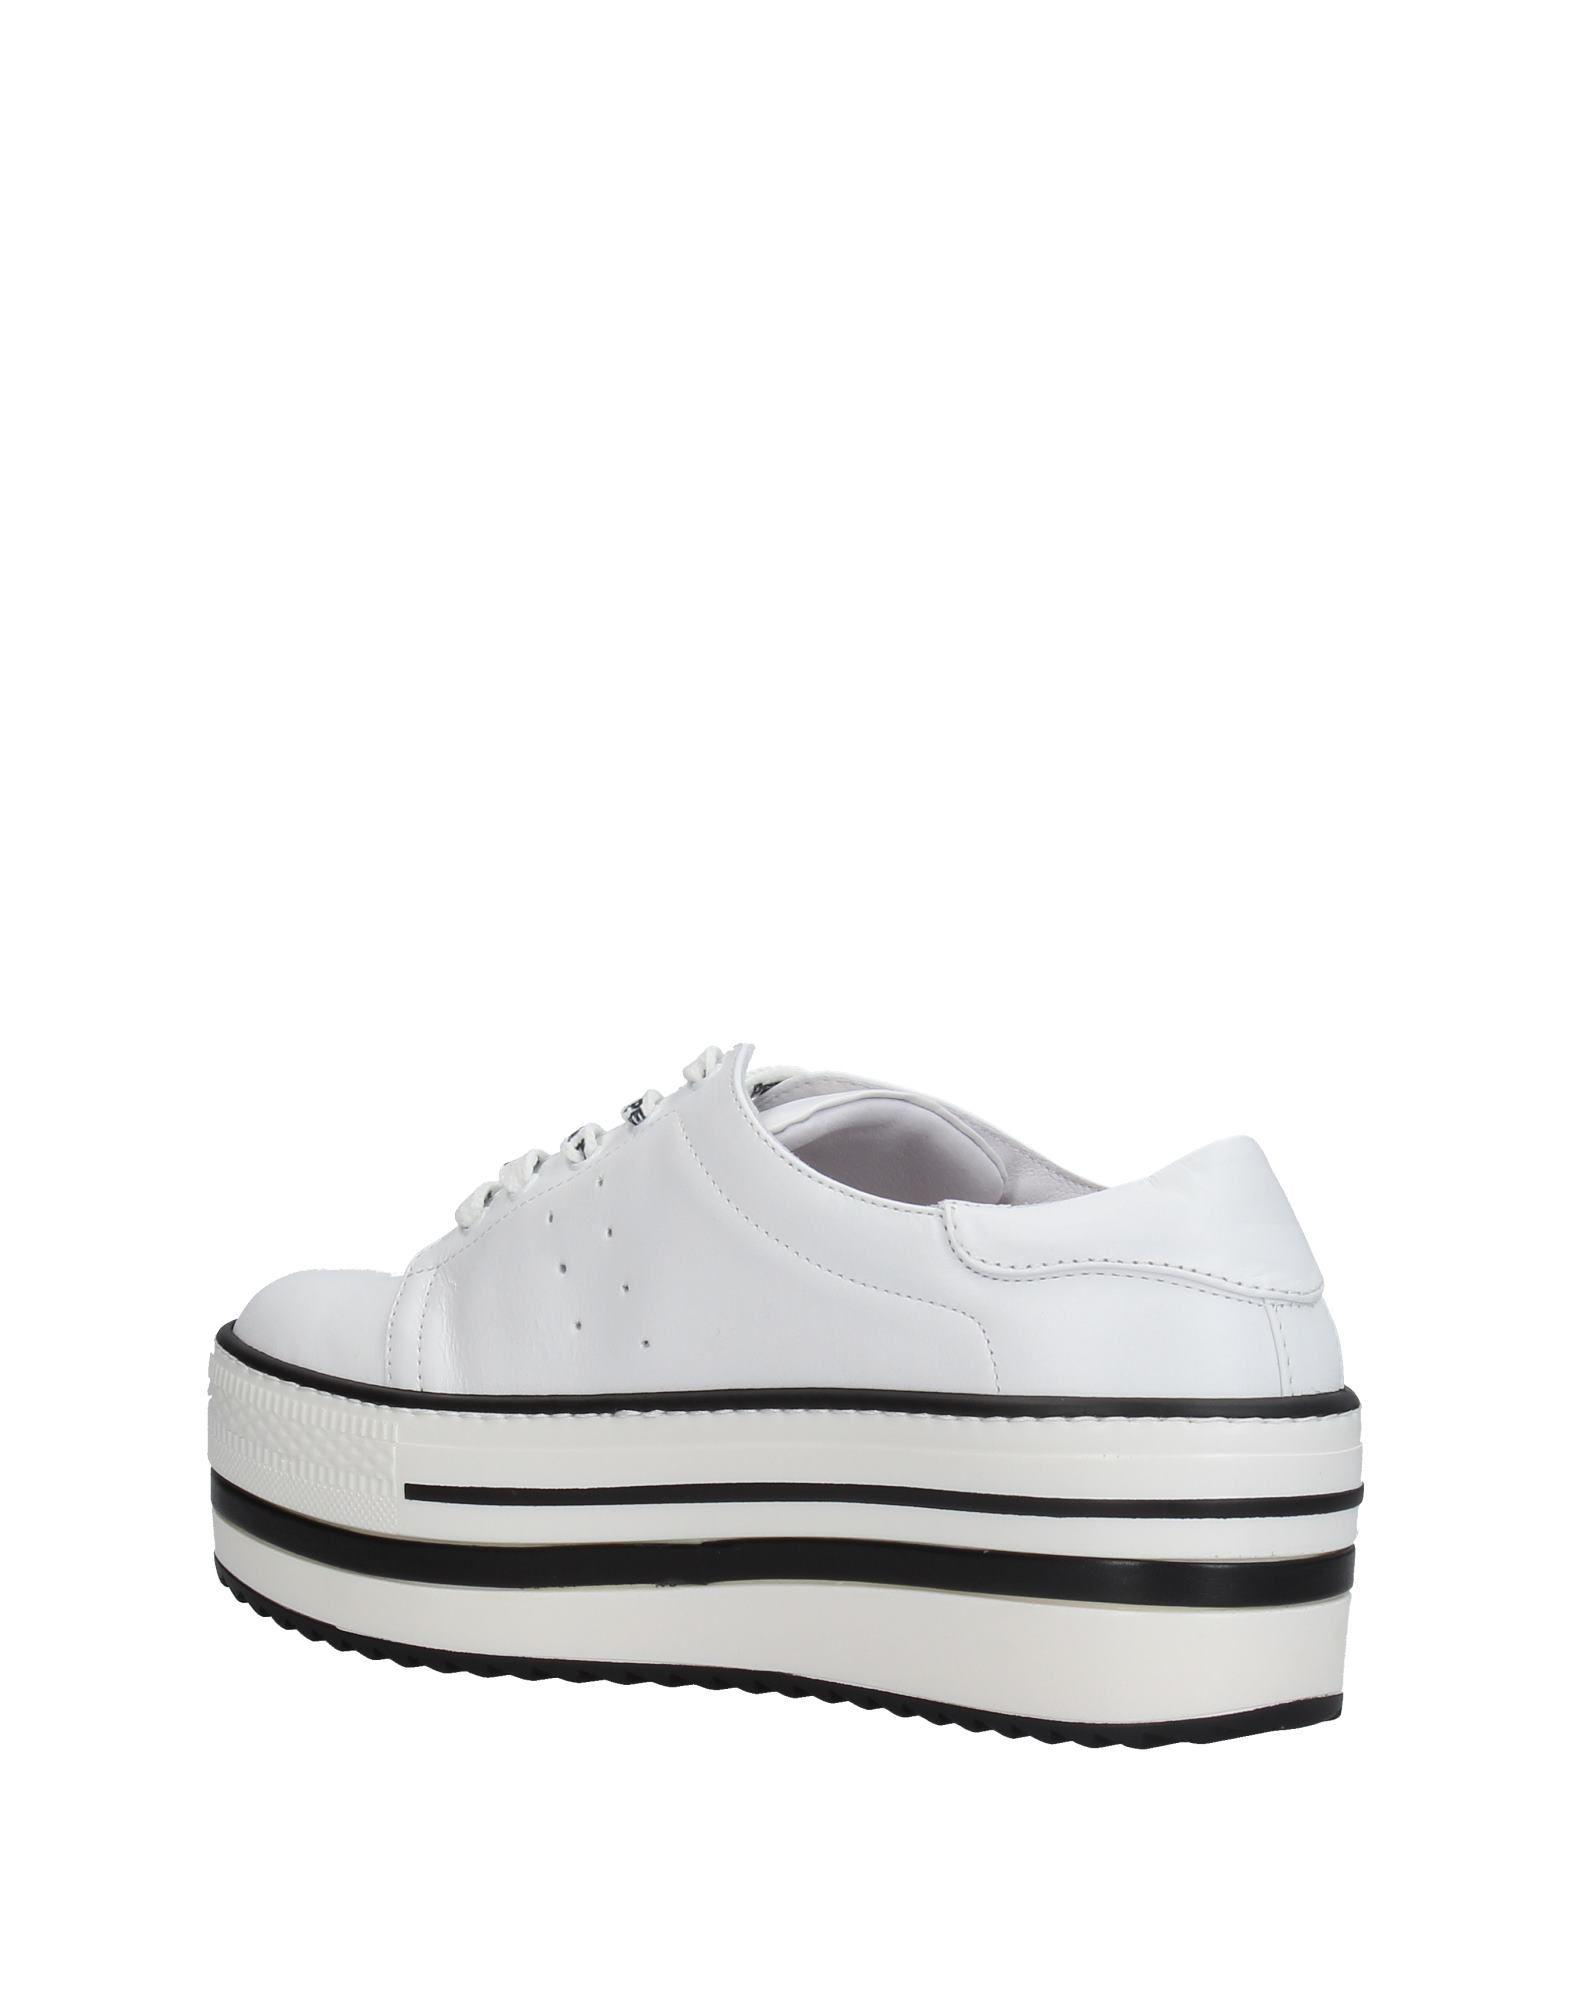 Patrizia Pepe Leather Low-tops & Sneakers in White